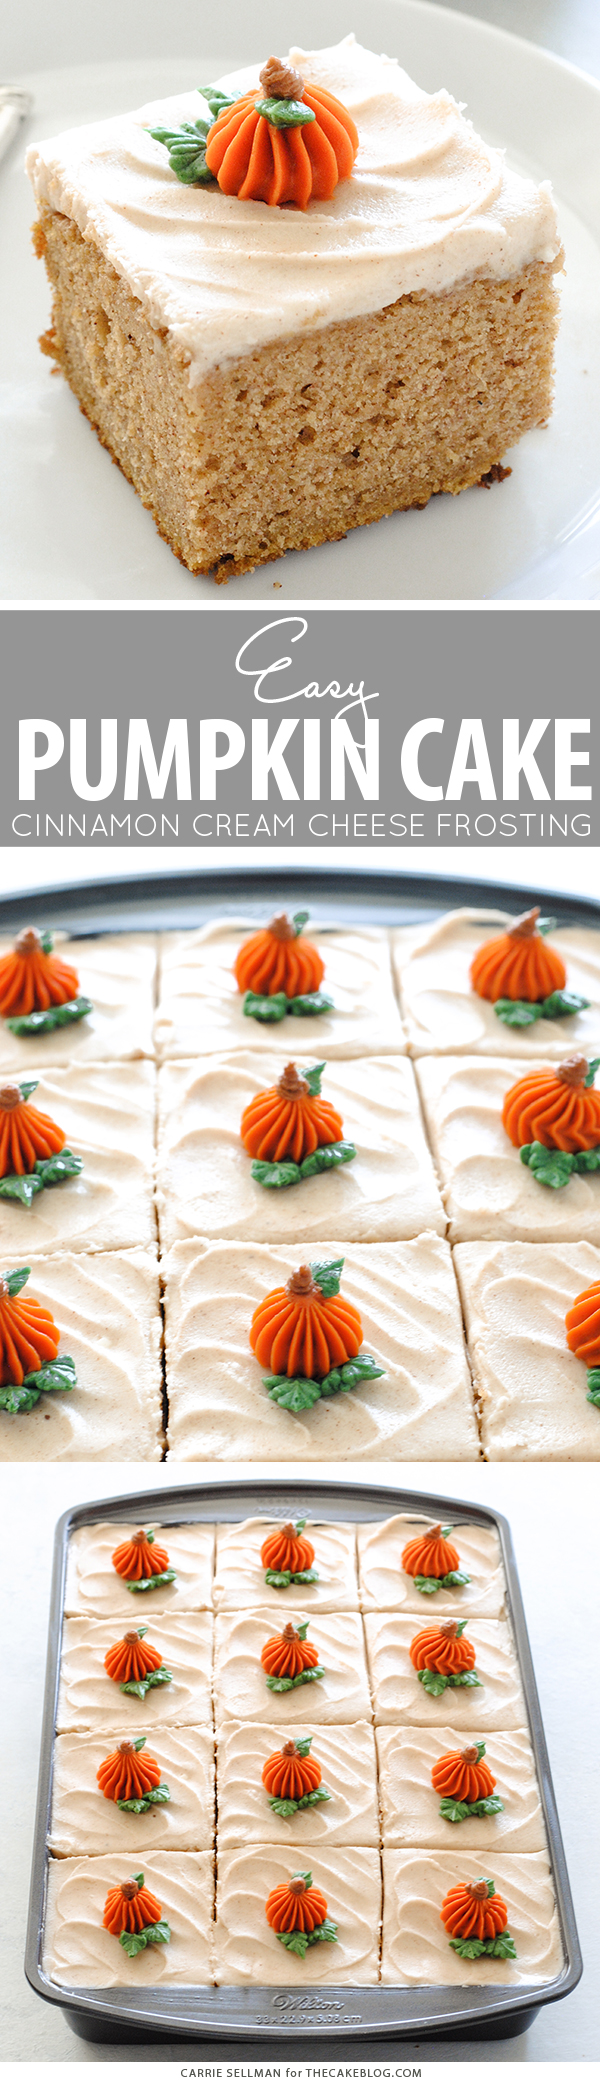 Pumpkin Sheet Cake - easy pumpkin cake with cinnamon cream cheese frosting, made from scratch and perfect for a crowd | by Carrie Sellman for TheCakeBlog.com